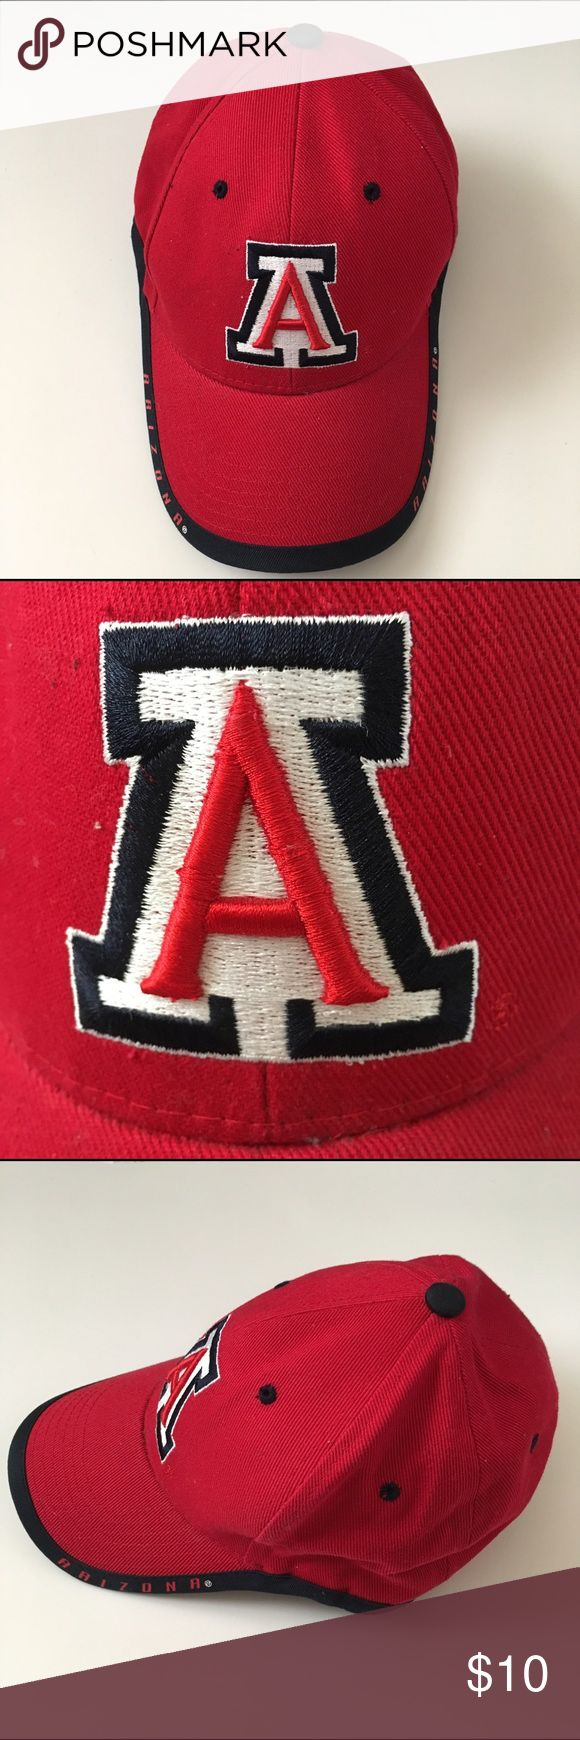 Arizona Wildcats Cap Worn once. Excellent condition. Accessories Hats